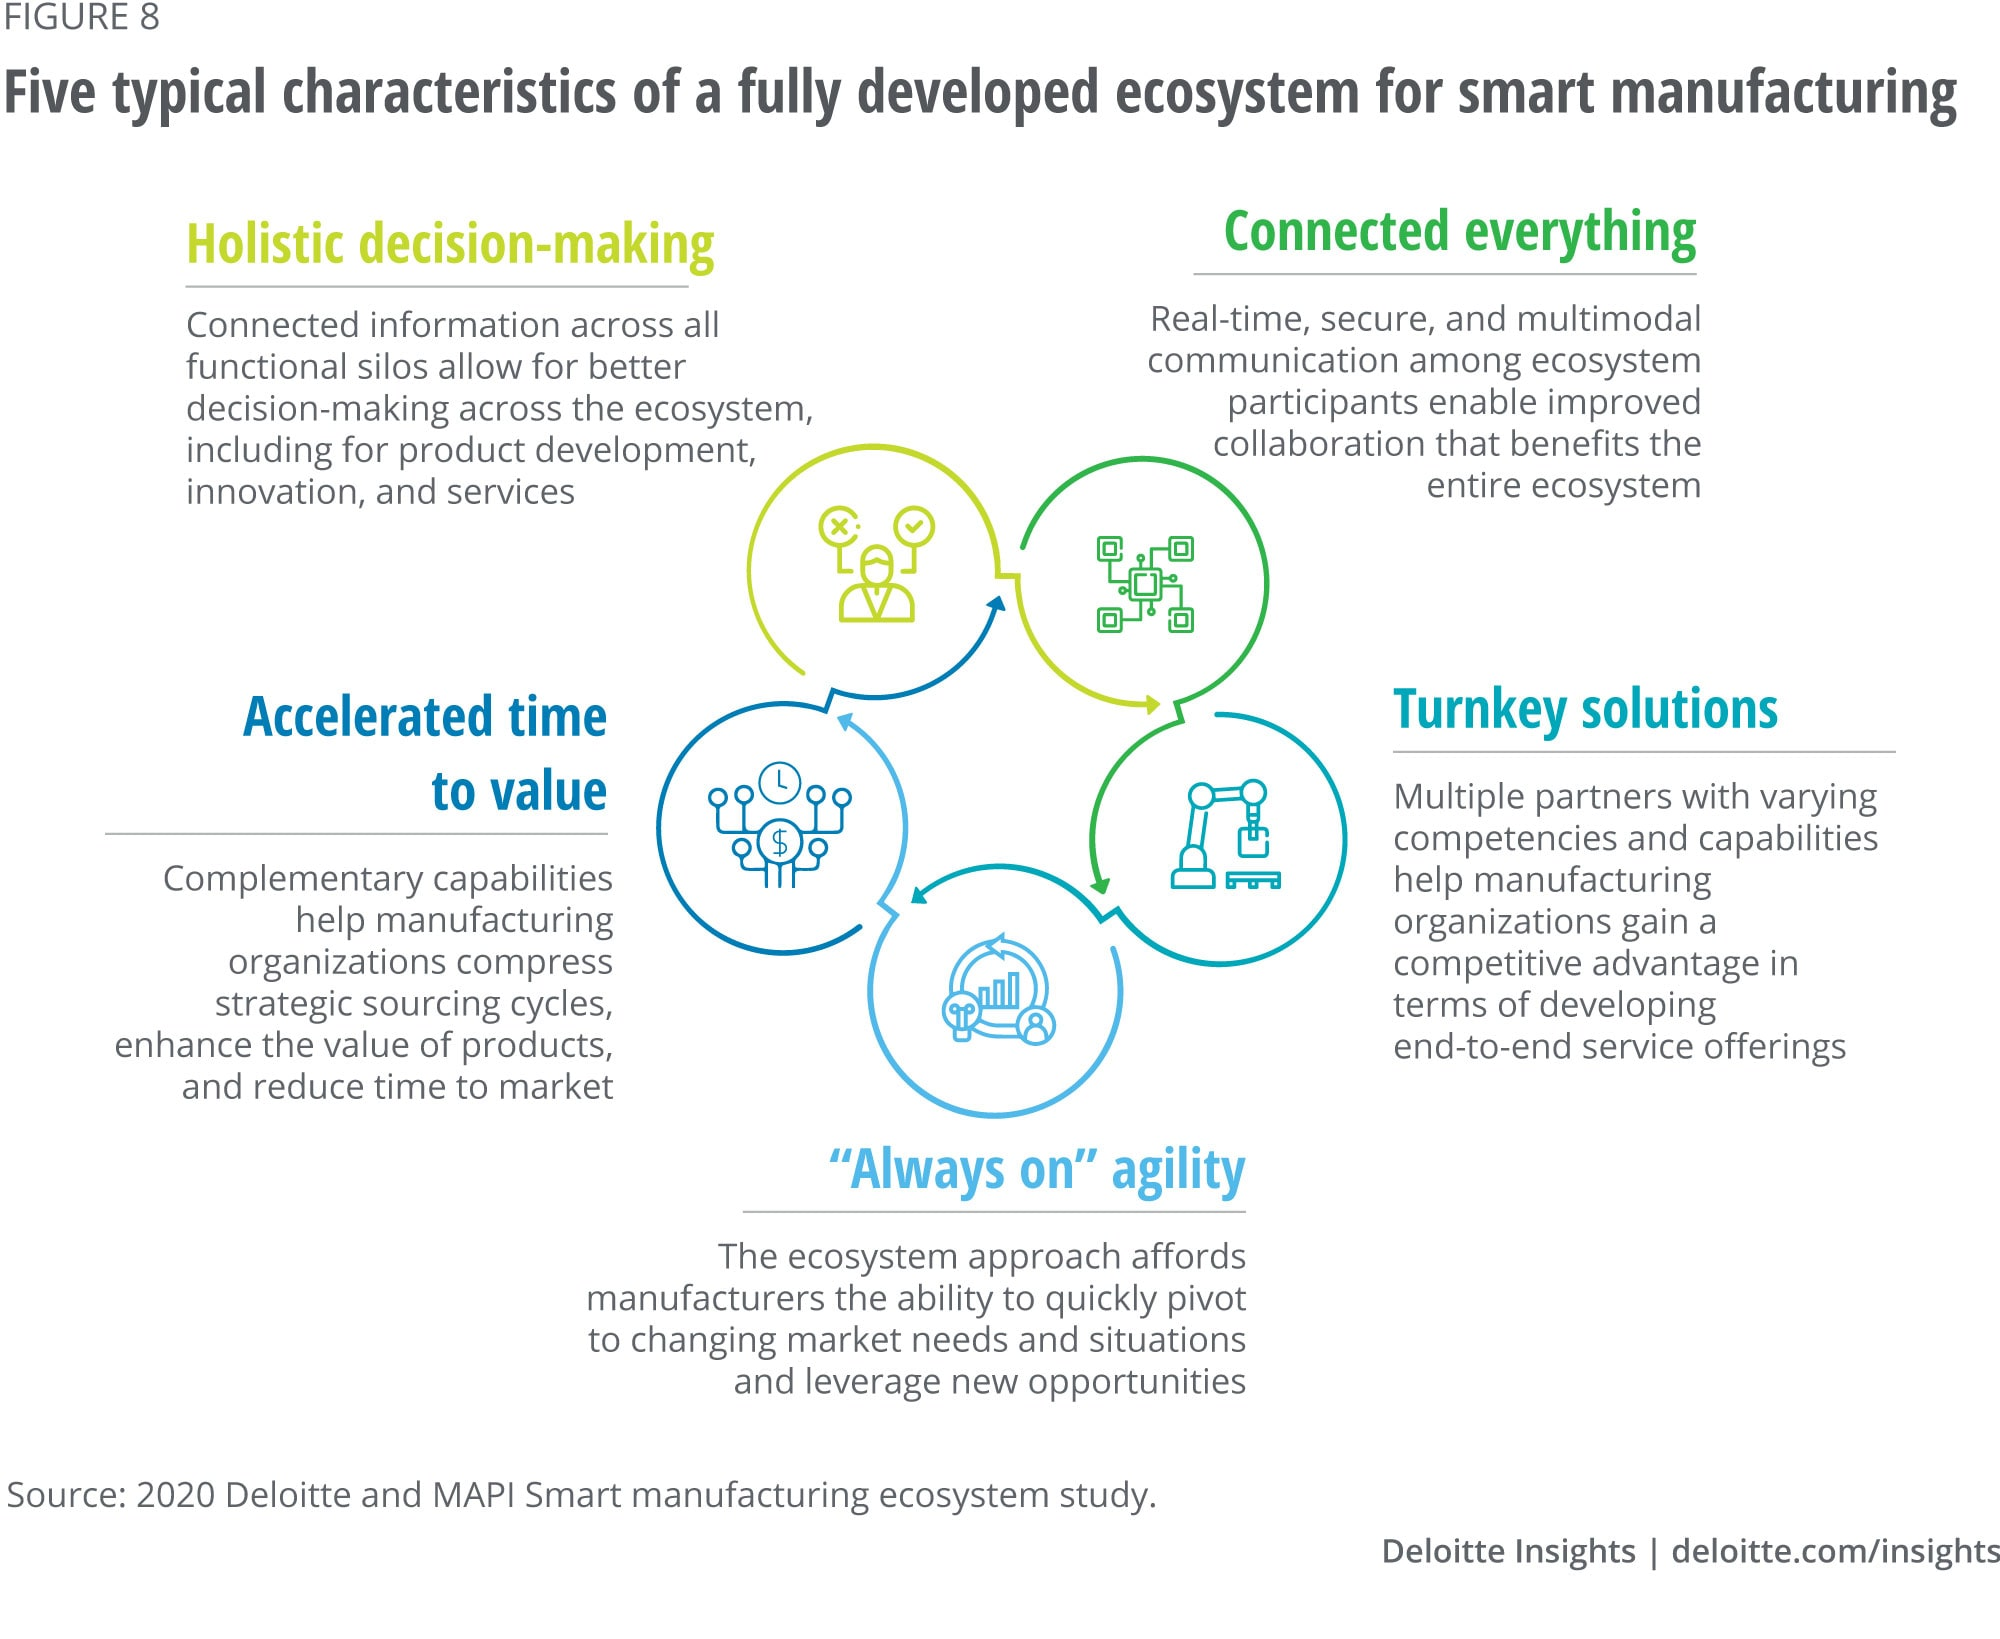 Five typical characteristics of a fully developed ecosystem for smart manufacturing